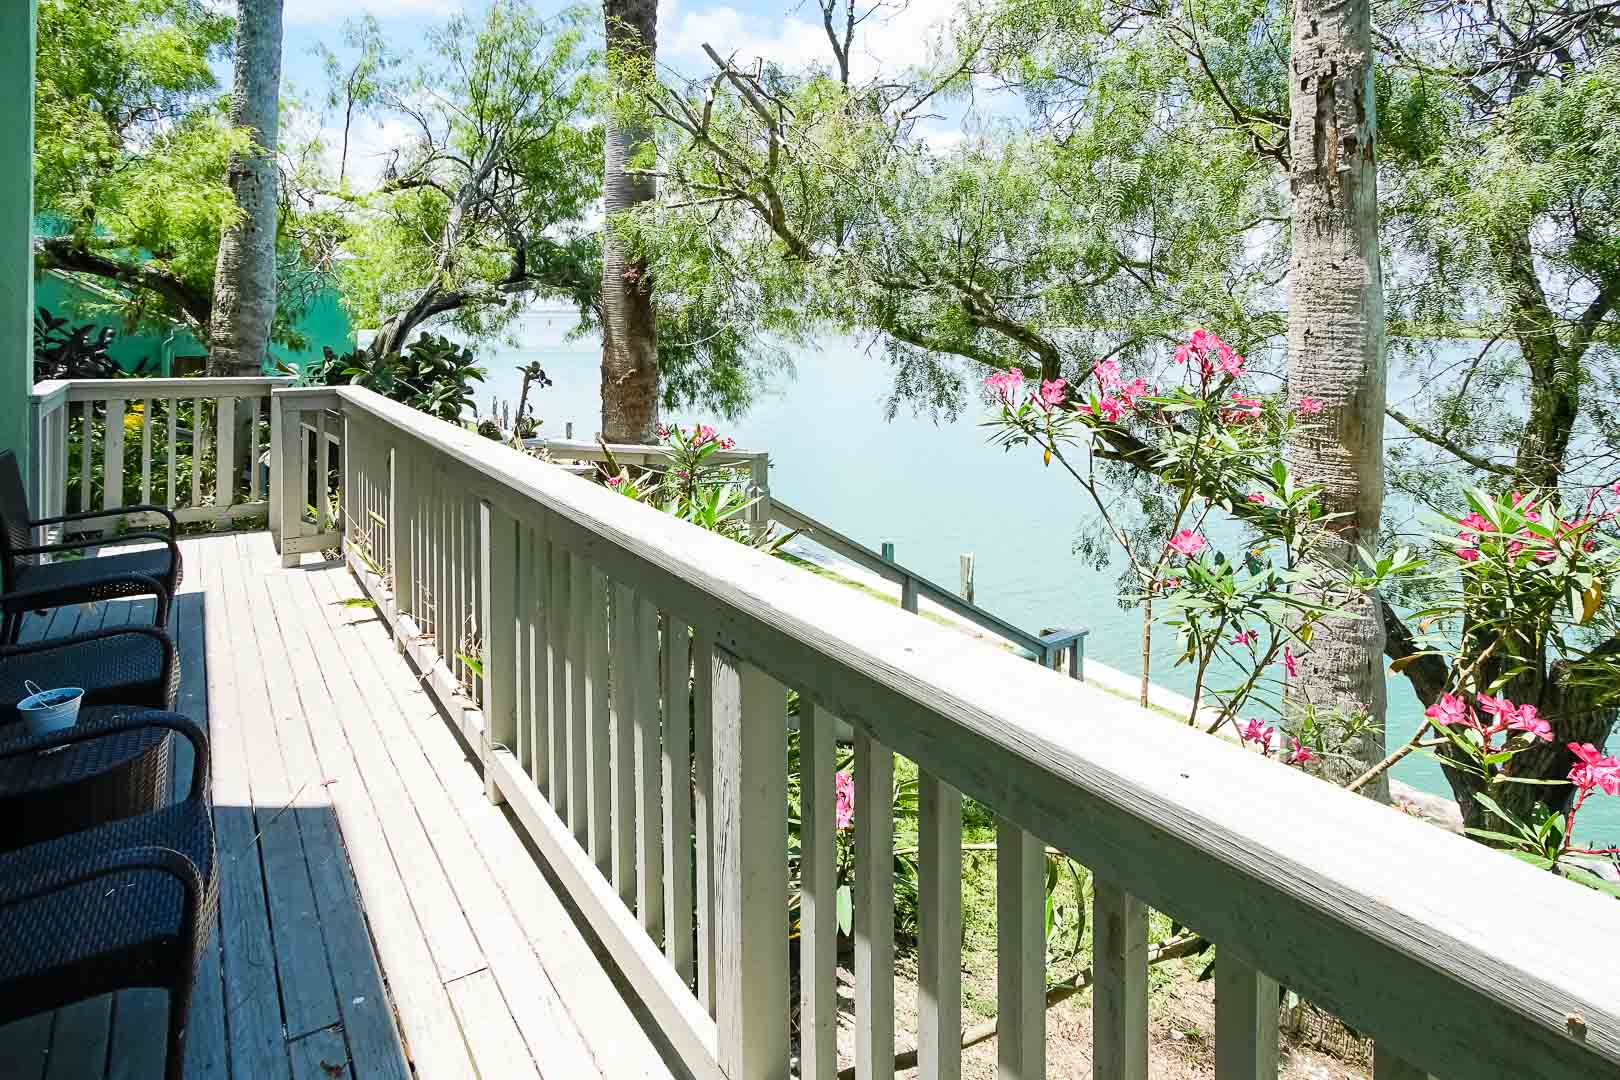 A peaceful balcony view at VRI's Puente Vista Resort in Texas.